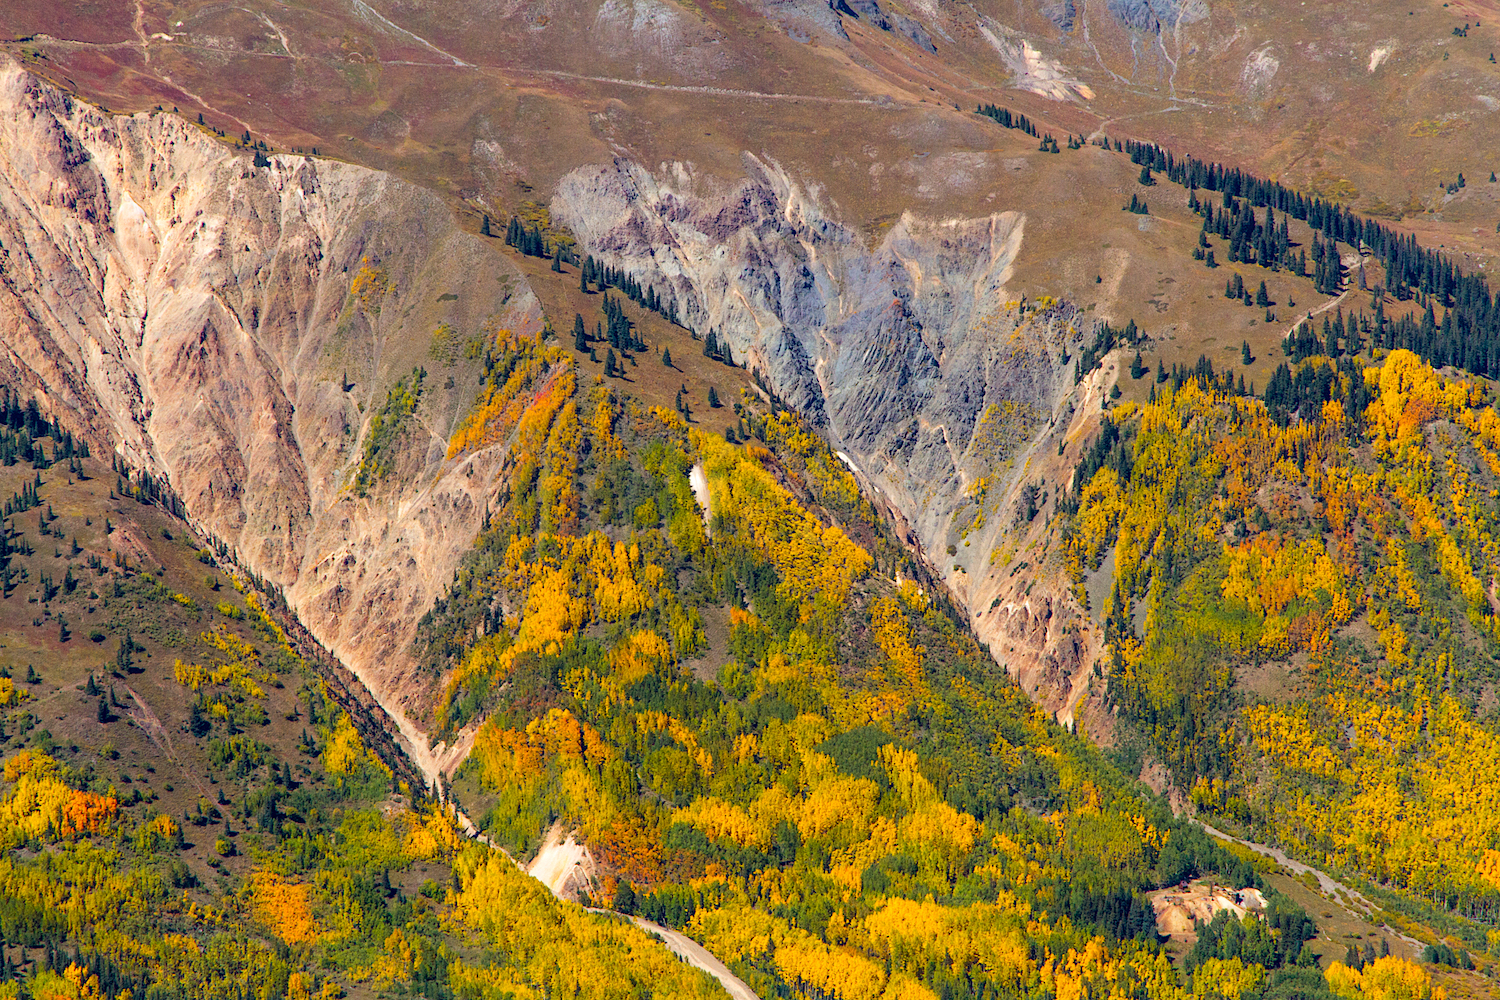 Red Mountain #3, Image # 6167